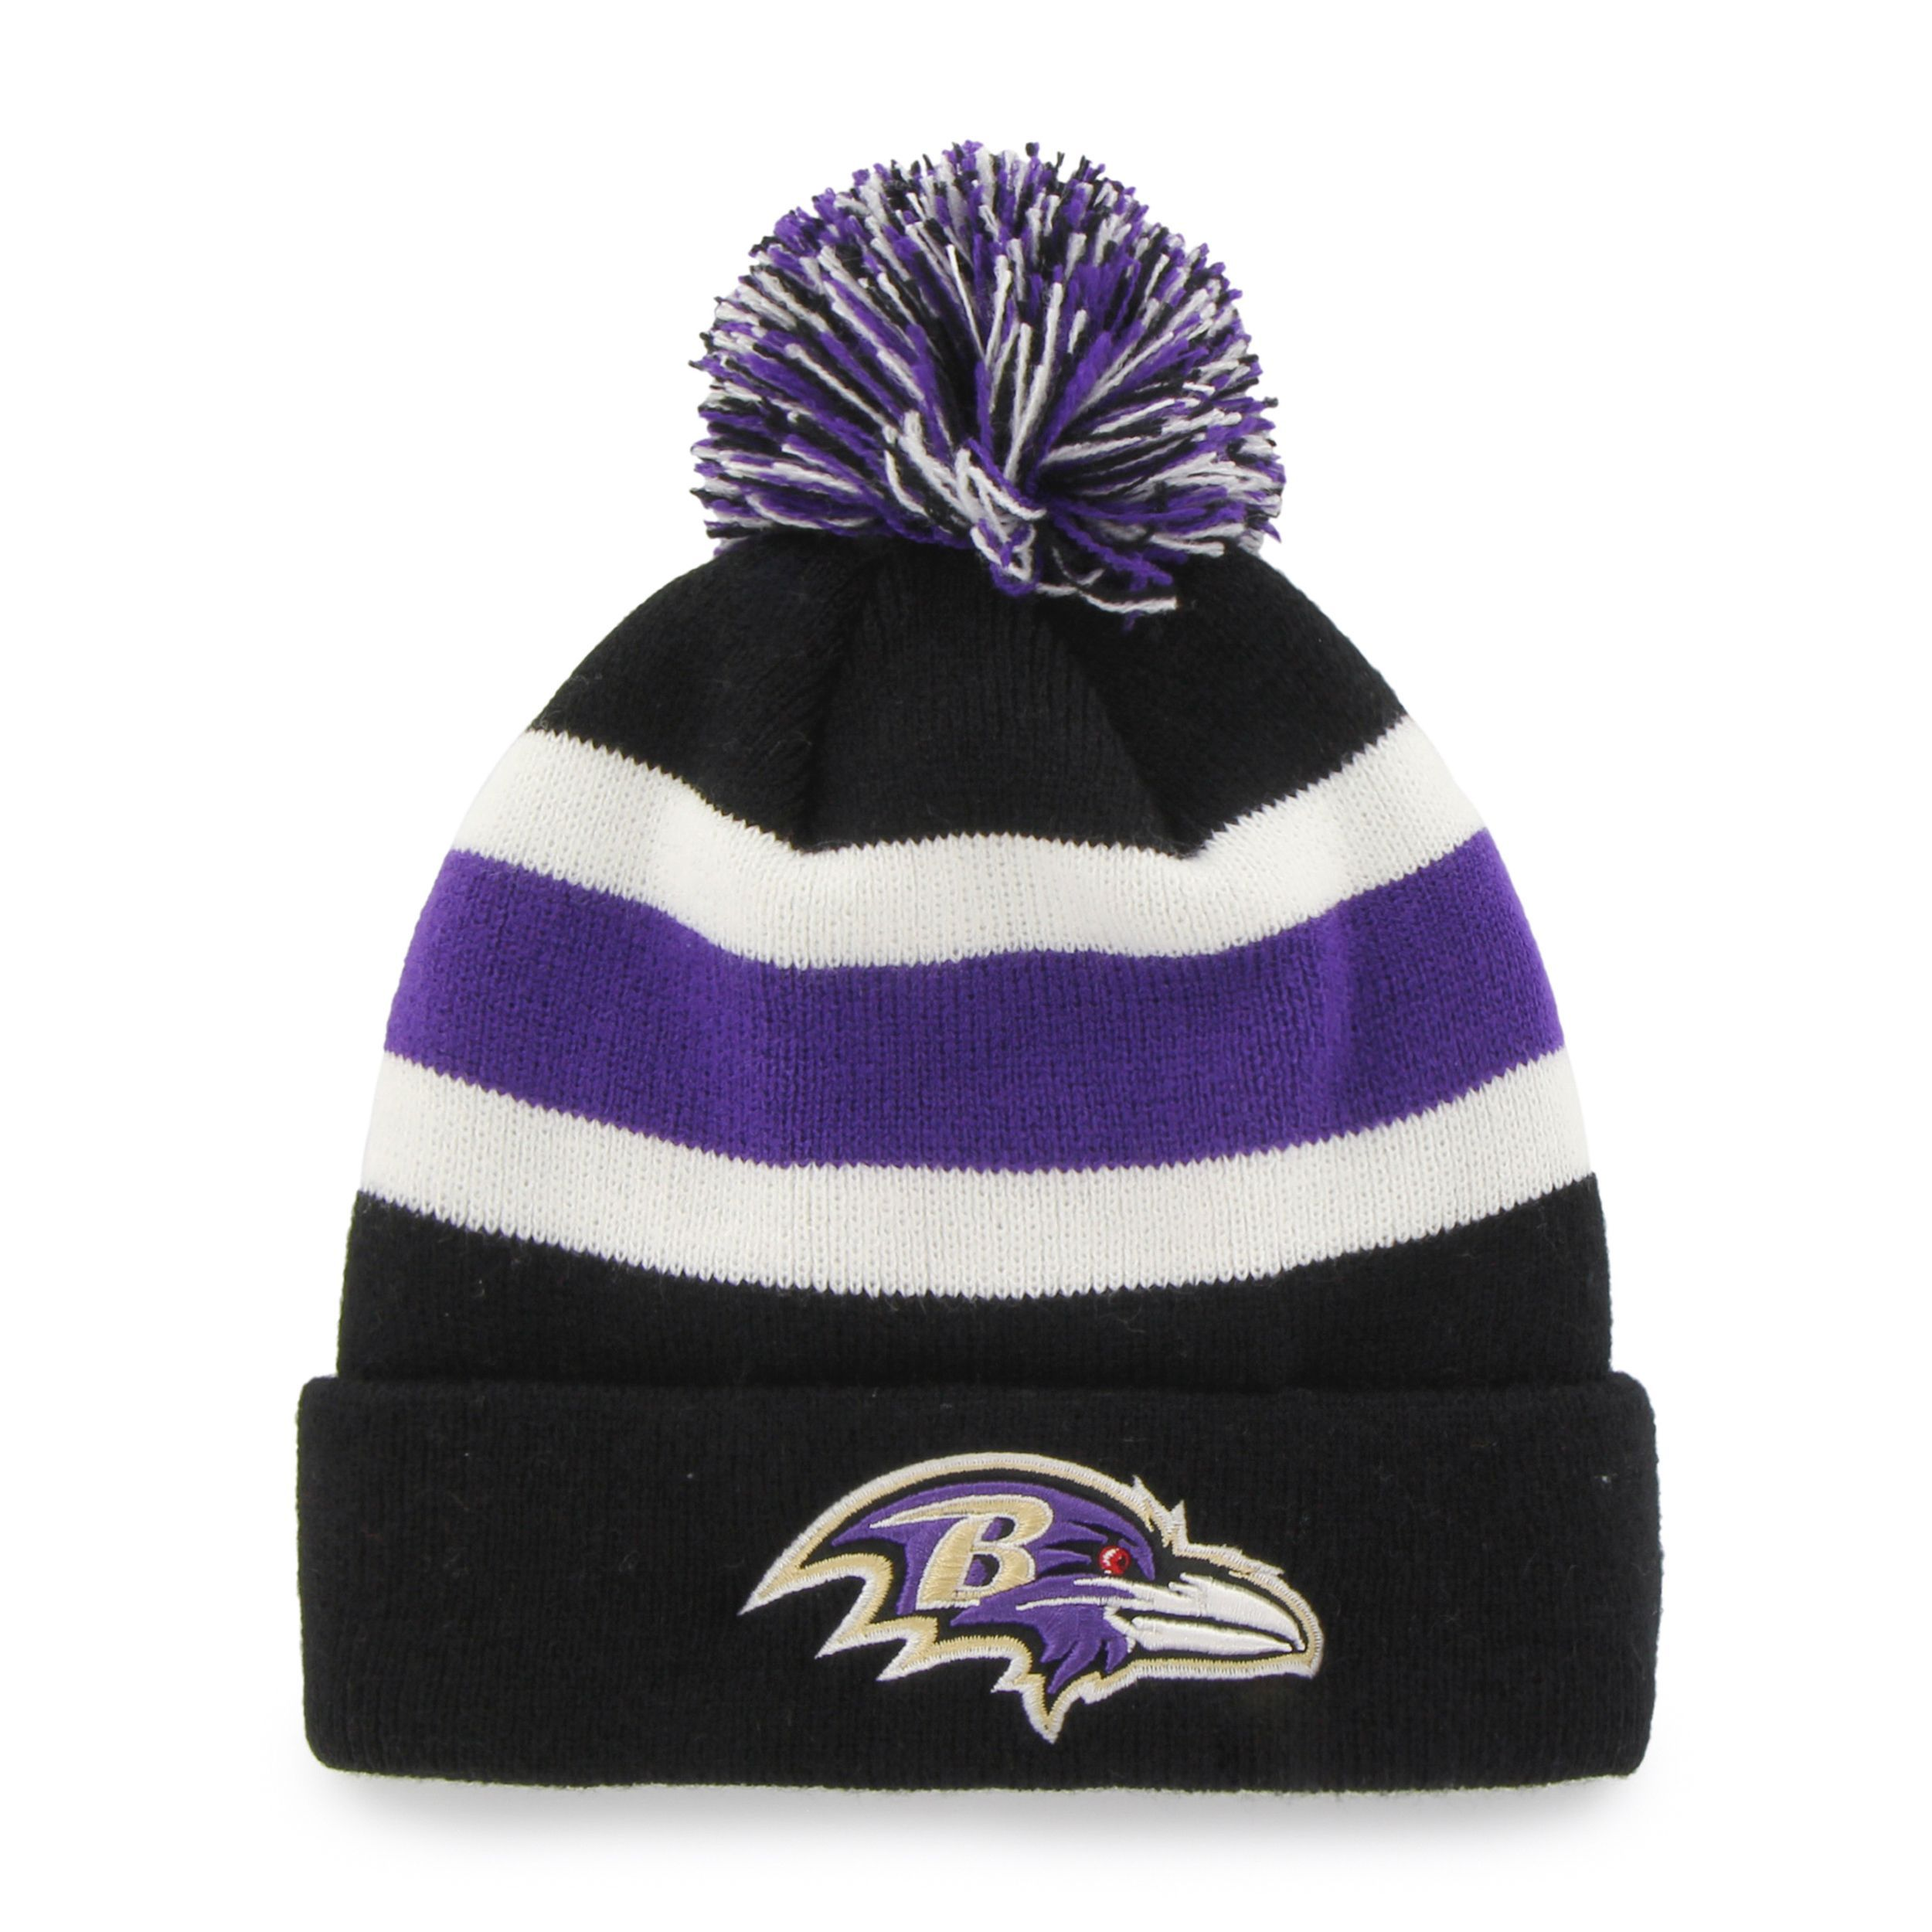 a3501ee76da Fan Favorites Baltimore Ravens NFL Beanie Hat